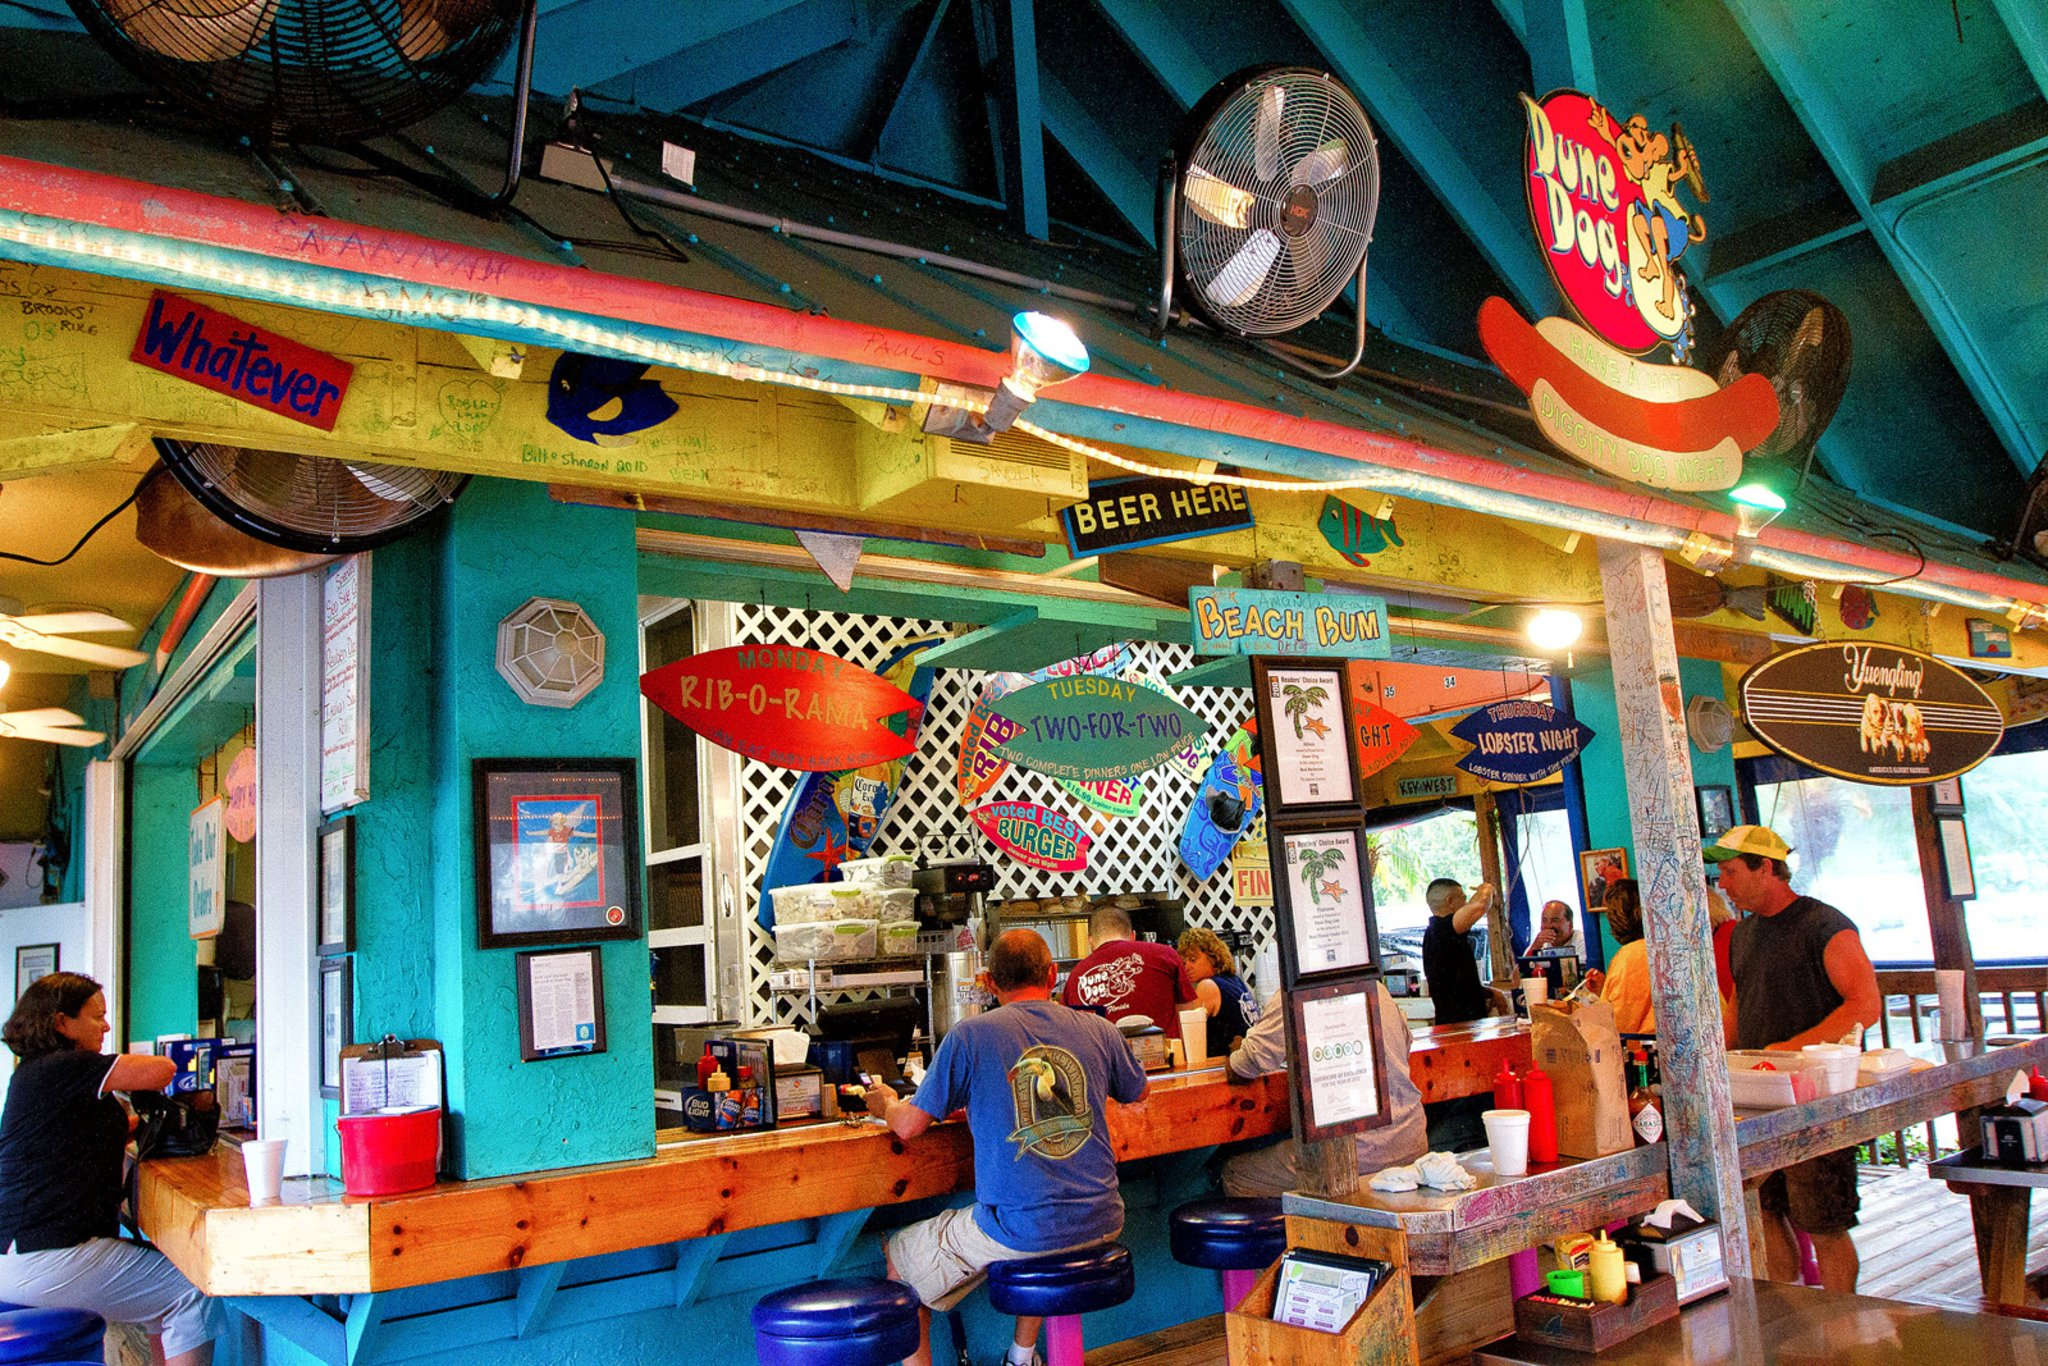 Dune Dog Cafe - Voted best ribs and hot dogs in the Palm Beach area!From the Dune Dog Cafe website: